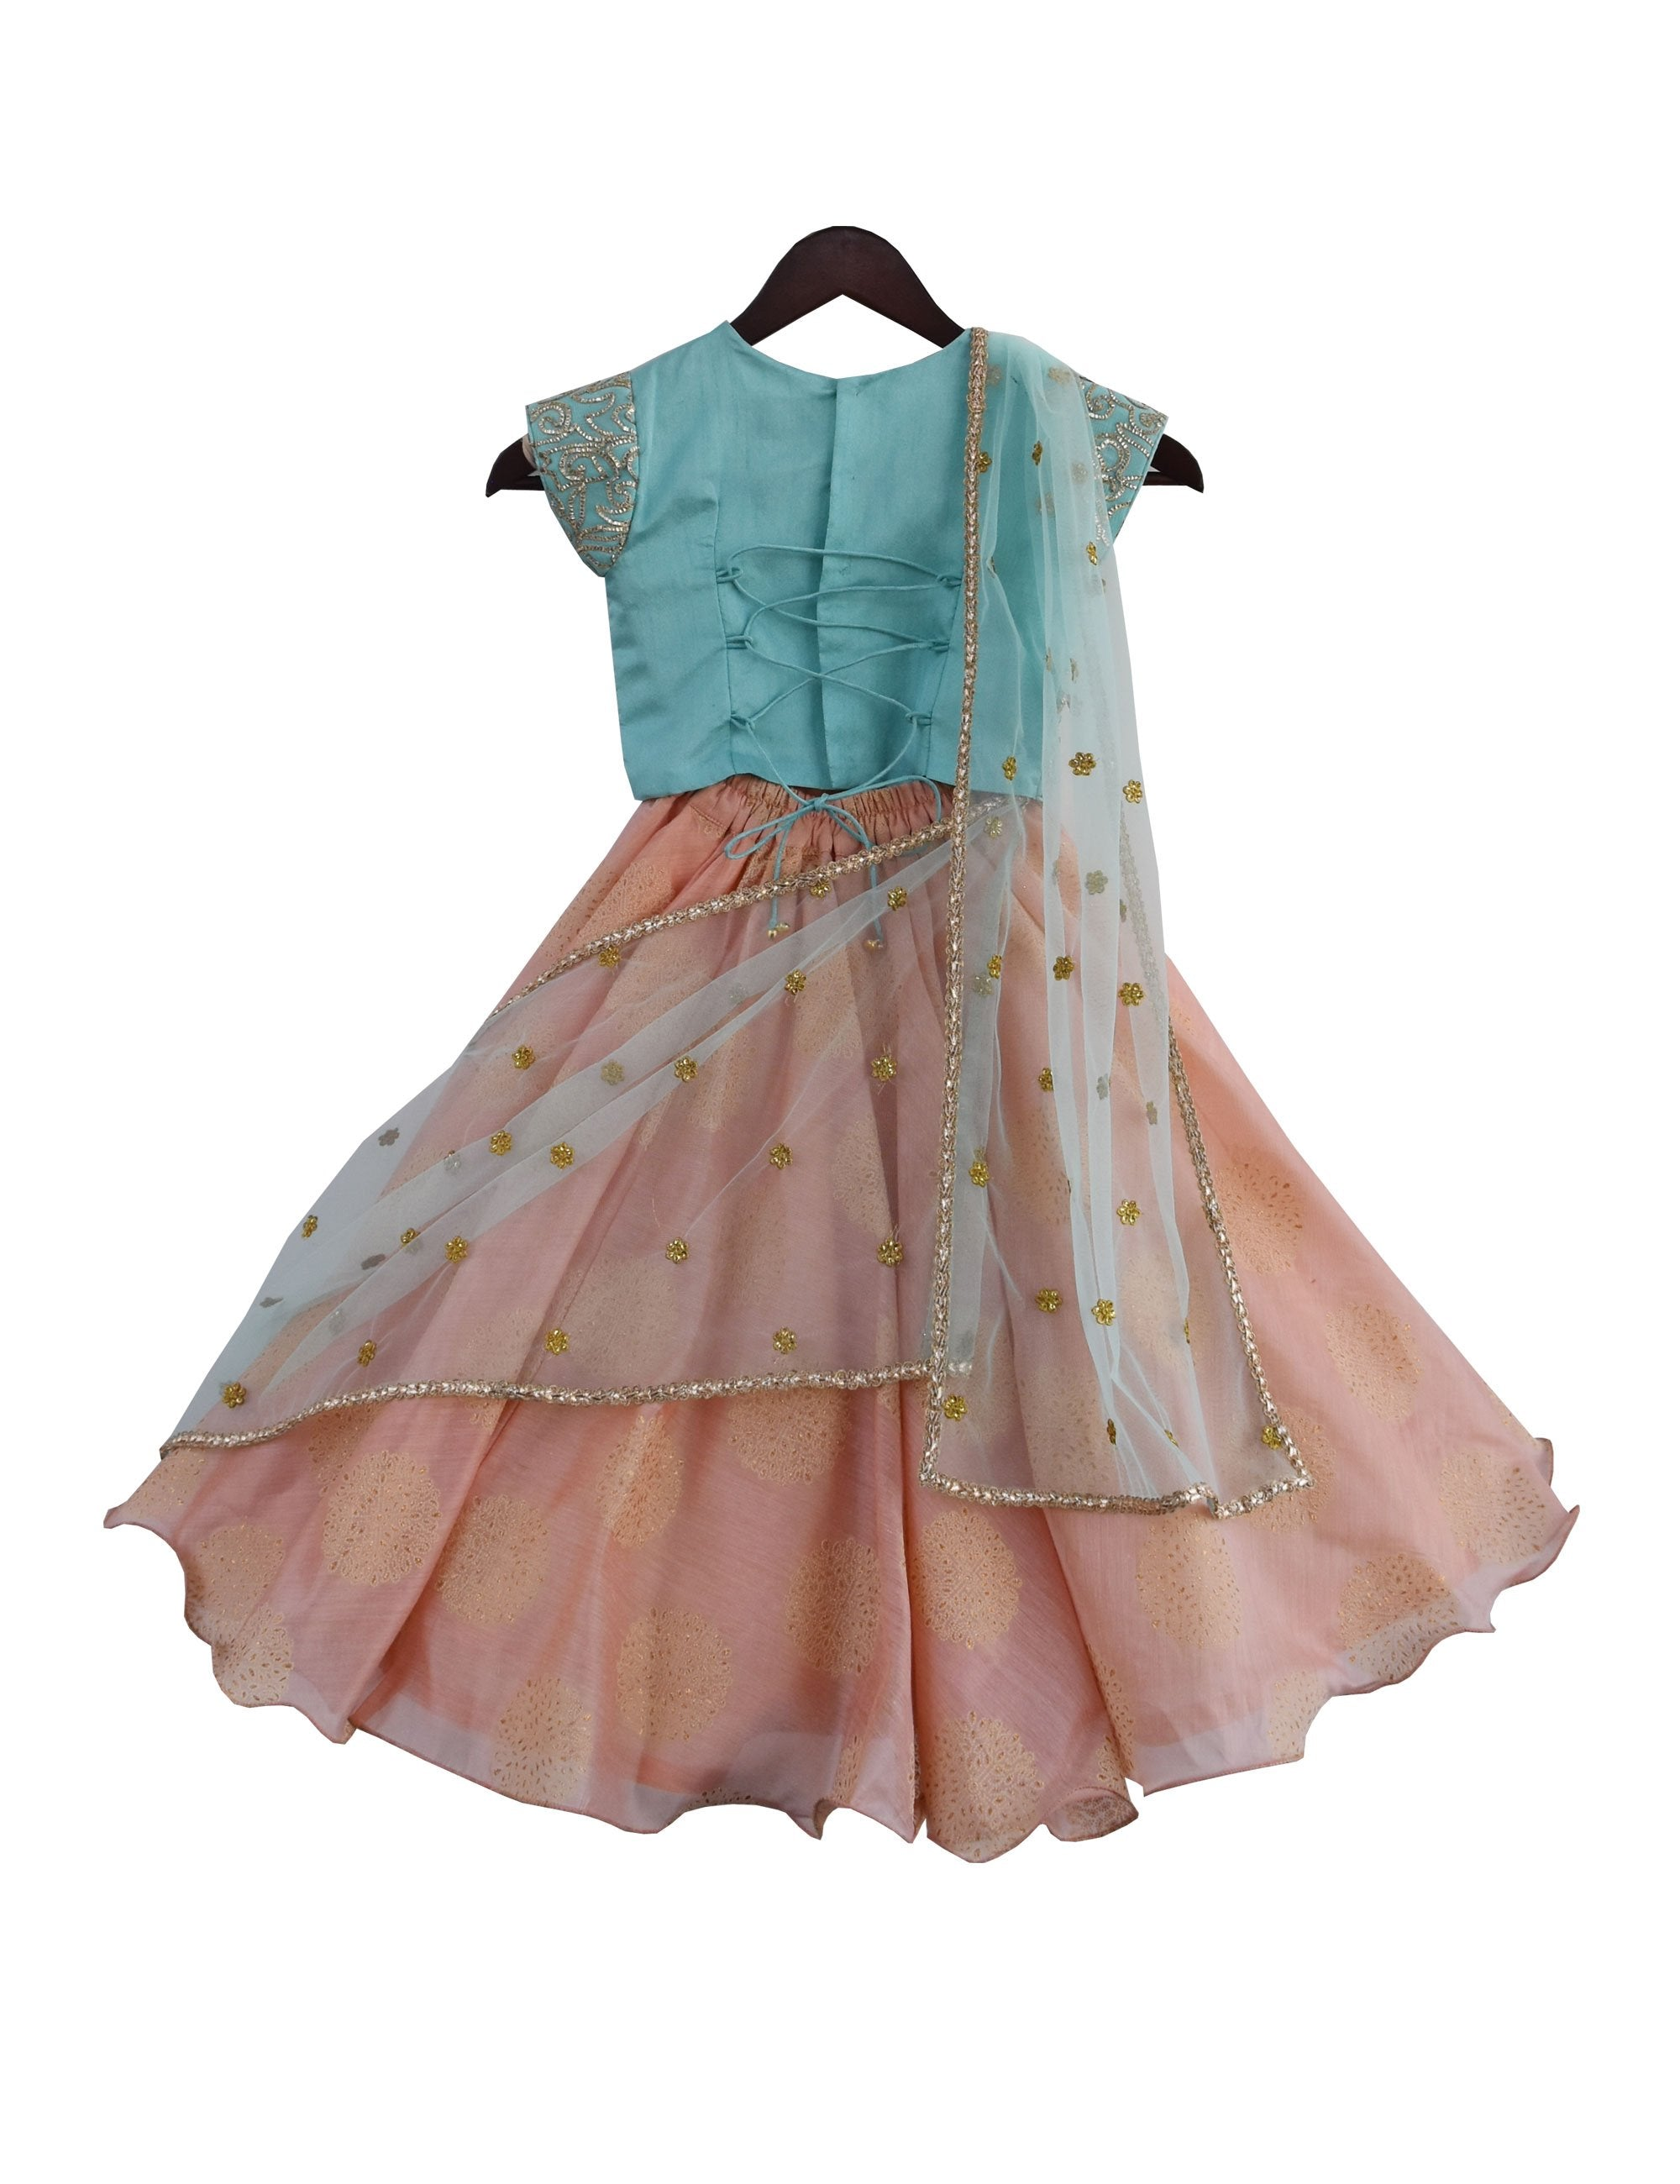 Lehenga Choli with Dupatta in Blue and Peach Colour for Girls